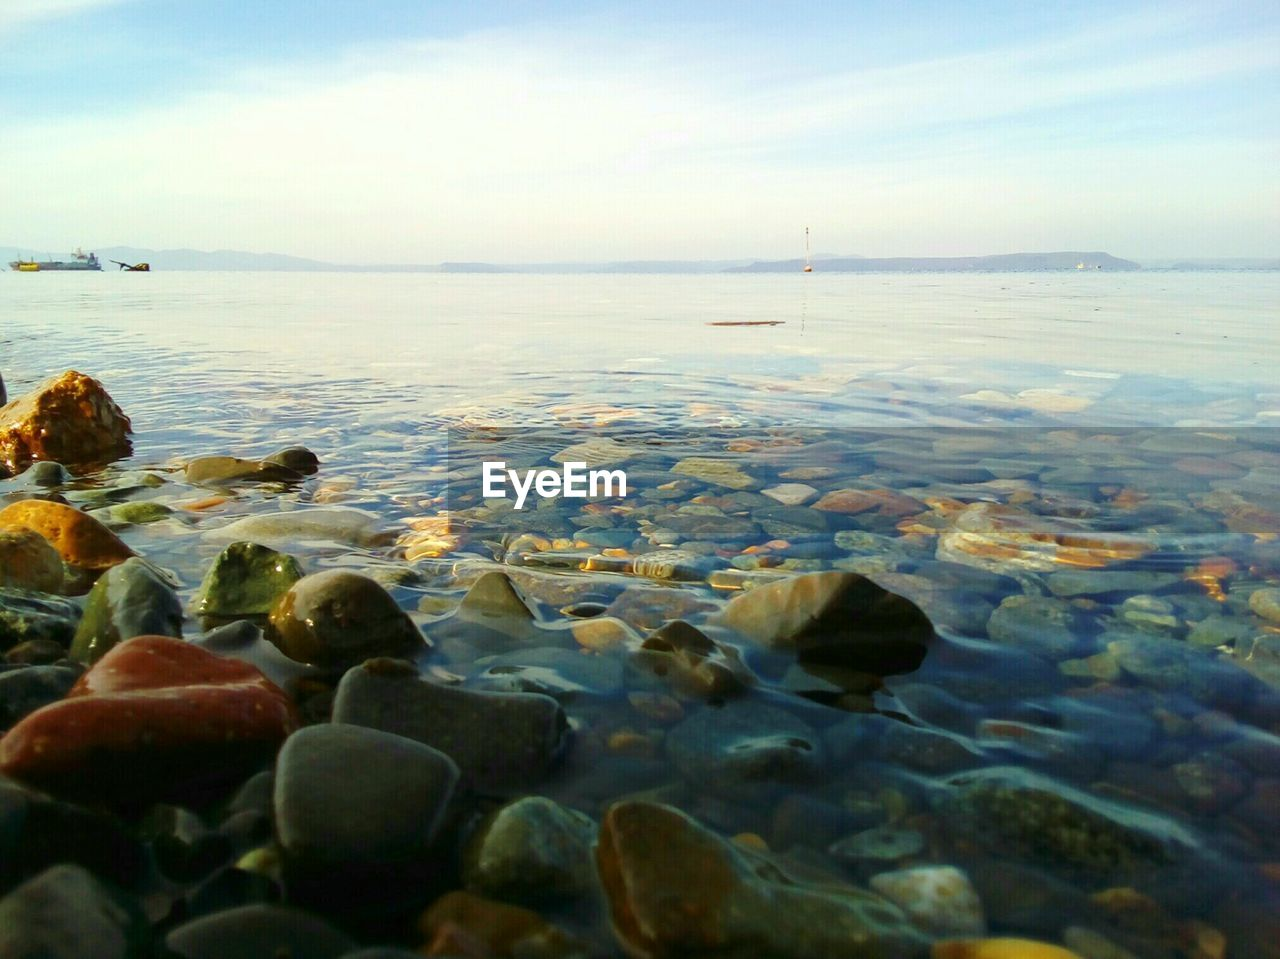 water, surface level, pebble, sea, pebble beach, nature, sky, outdoors, no people, cloud - sky, beauty in nature, tranquil scene, day, beach, scenics, horizon over water, close-up